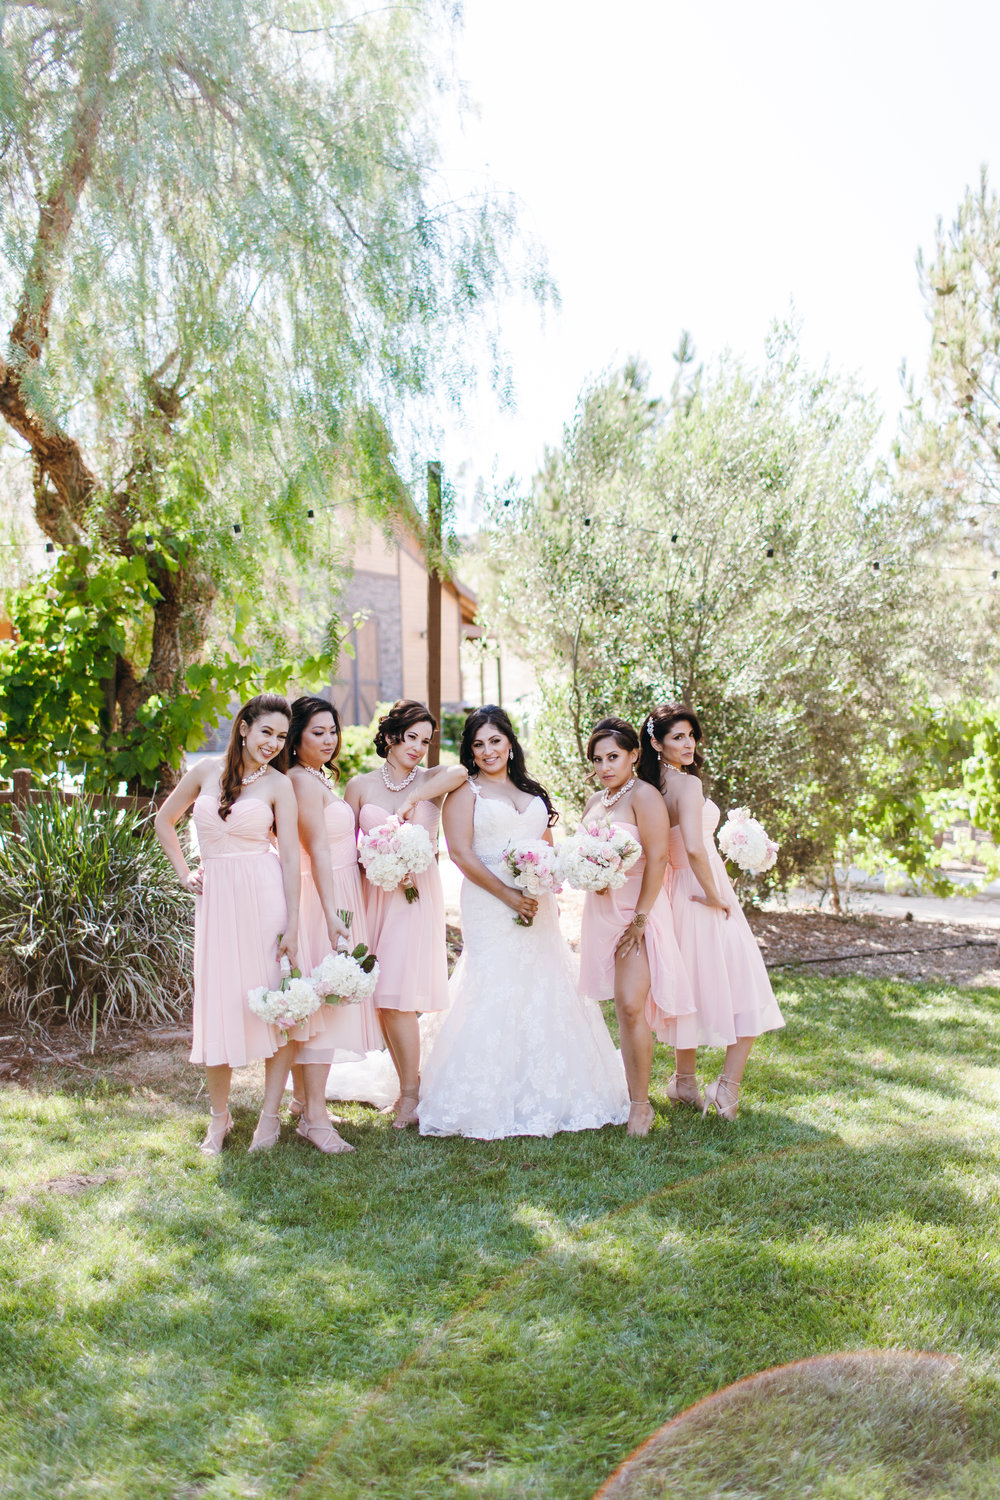 KaraNixonWeddings-Temecula-VineyardWedding-12.jpg